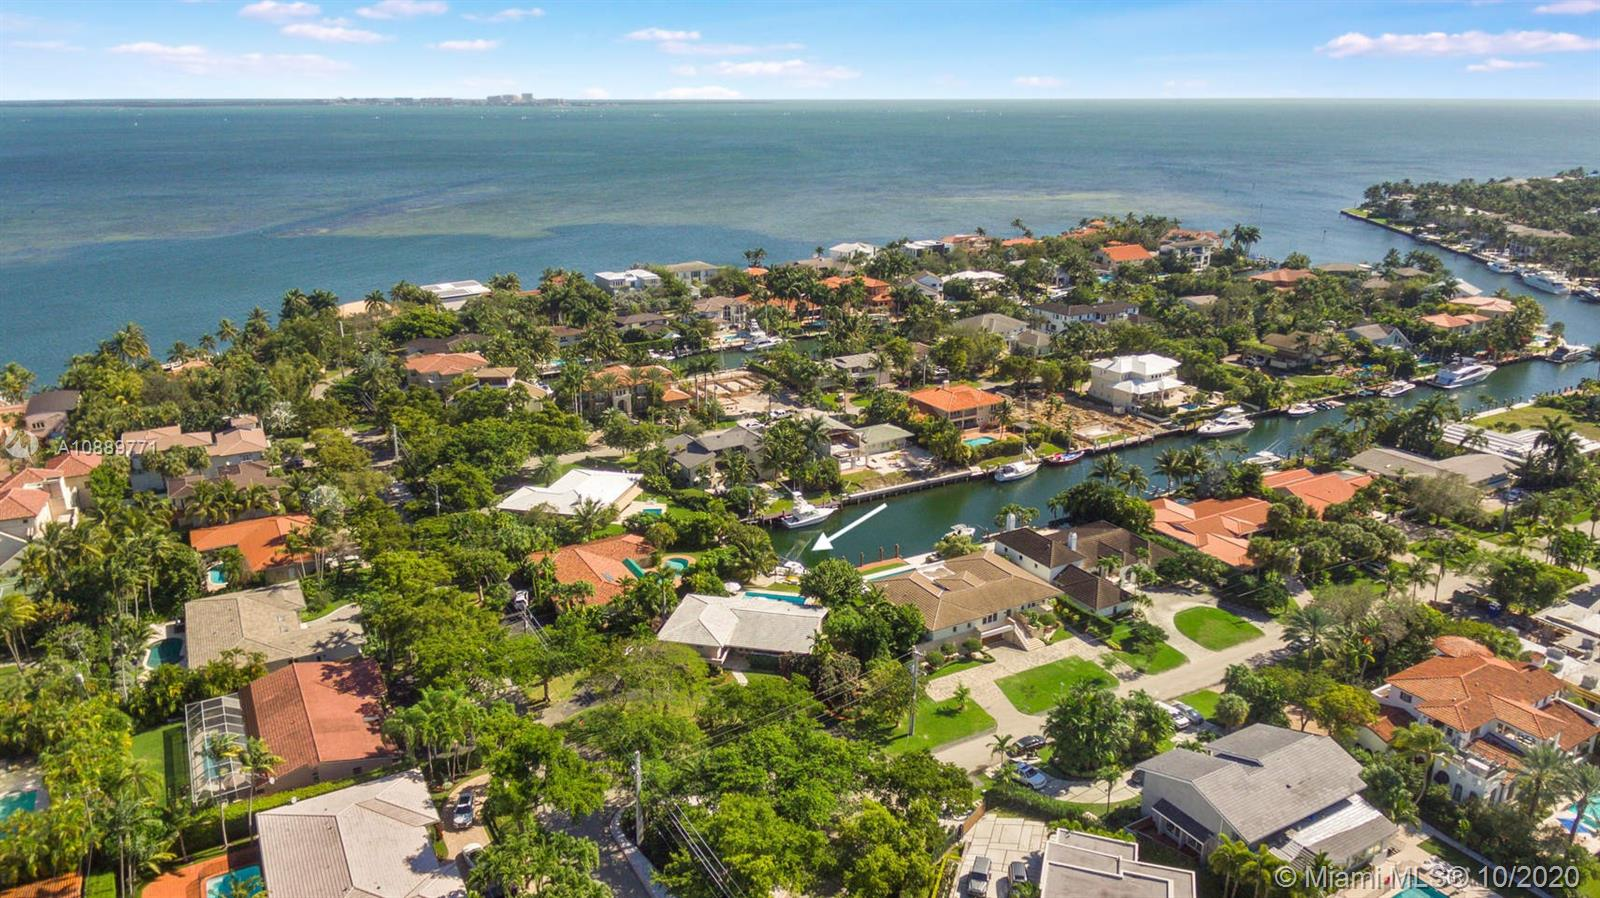 Endless possibilities await! The best value waterfront home in the coveted Sunrise Harbour gated community. This one-of-a-kind 2,568 SF 3 bed 3 bath waterfront home has no-bridge-to-bay direct ocean access. A grand entrance with circular driveway & stunning curb appeal greet you at the elevated split level Coral Gables residence. Partially renovated with updated kitchen, Impact windows & new roof. Entry level features open kitchen, dining & family rooms connected to an expansive patio overlooking the pool & private 30ft dock. Upstairs holds the bedrooms & main suite with balcony overlooking the water. Additional Downstairs level has 2 car garage, full bath, & den with private patio. Ready for move-in or renovate/rebuild on 15,700SF lot. 